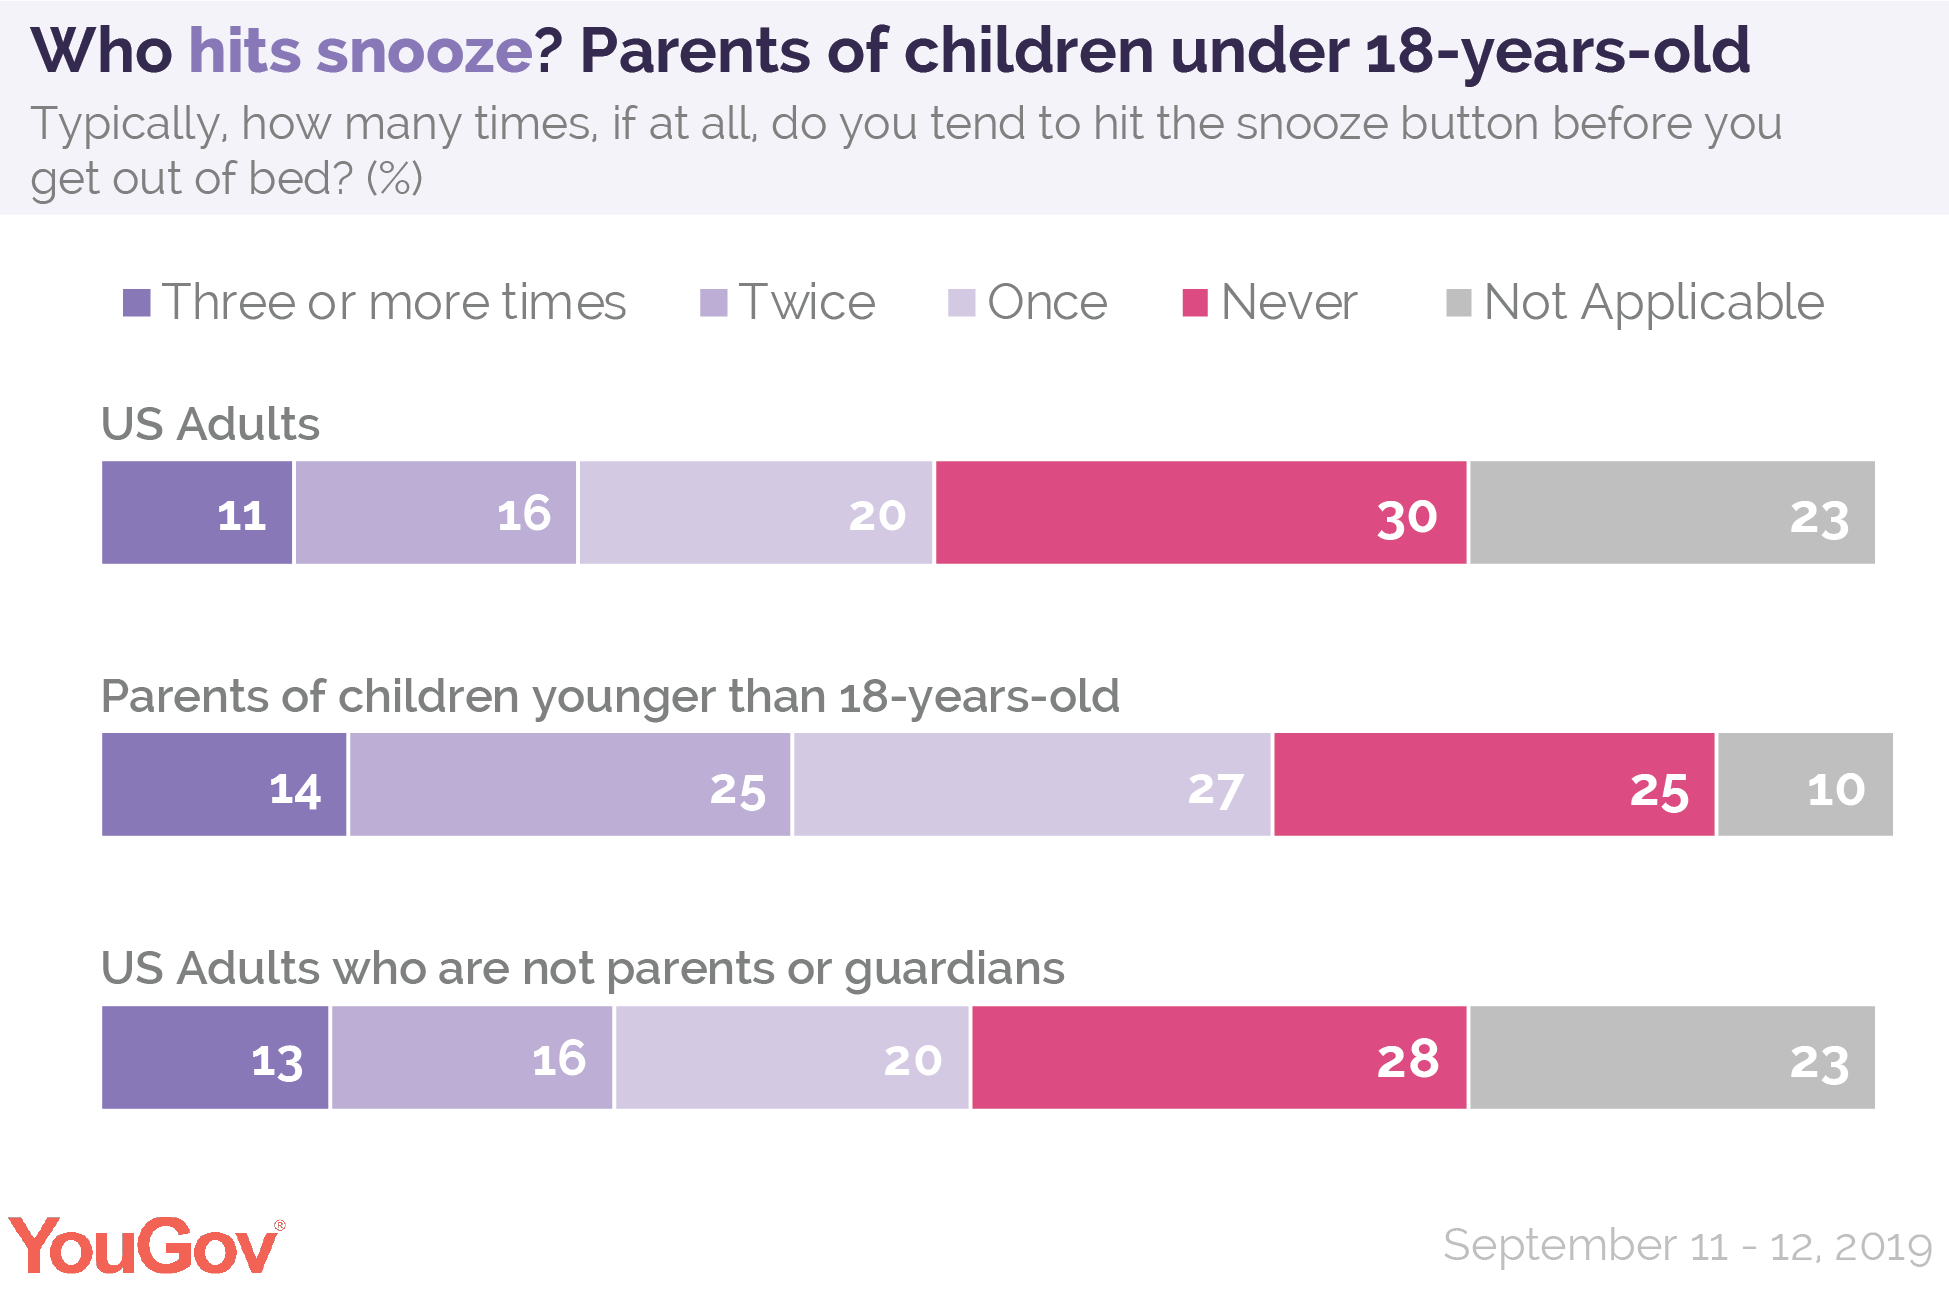 Who hits snooze? Parents of children who are under 18 years old